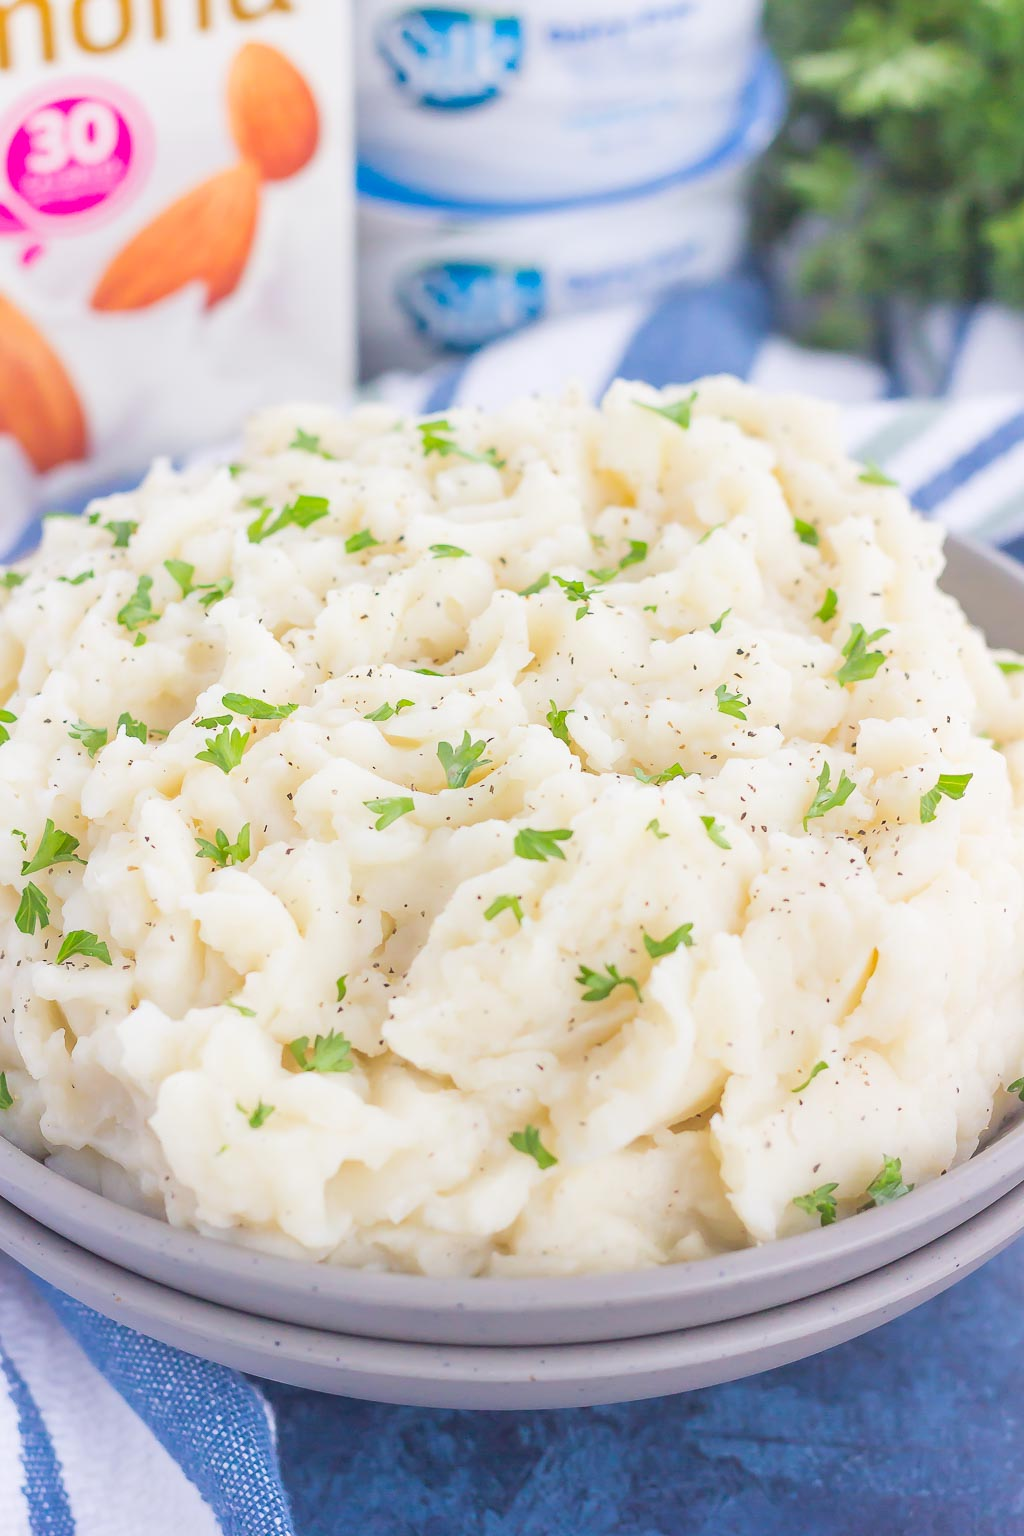 These Dairy-Free Garlic Mashed Potatoes are creamy, loaded with flavor, and made with no cream or butter. Tender potatoes are whipped to perfection and then sprinkled with seasonings and ready to serve. Easy to make and with simple ingredients, you'll never miss the dairy in this tasty side dish!